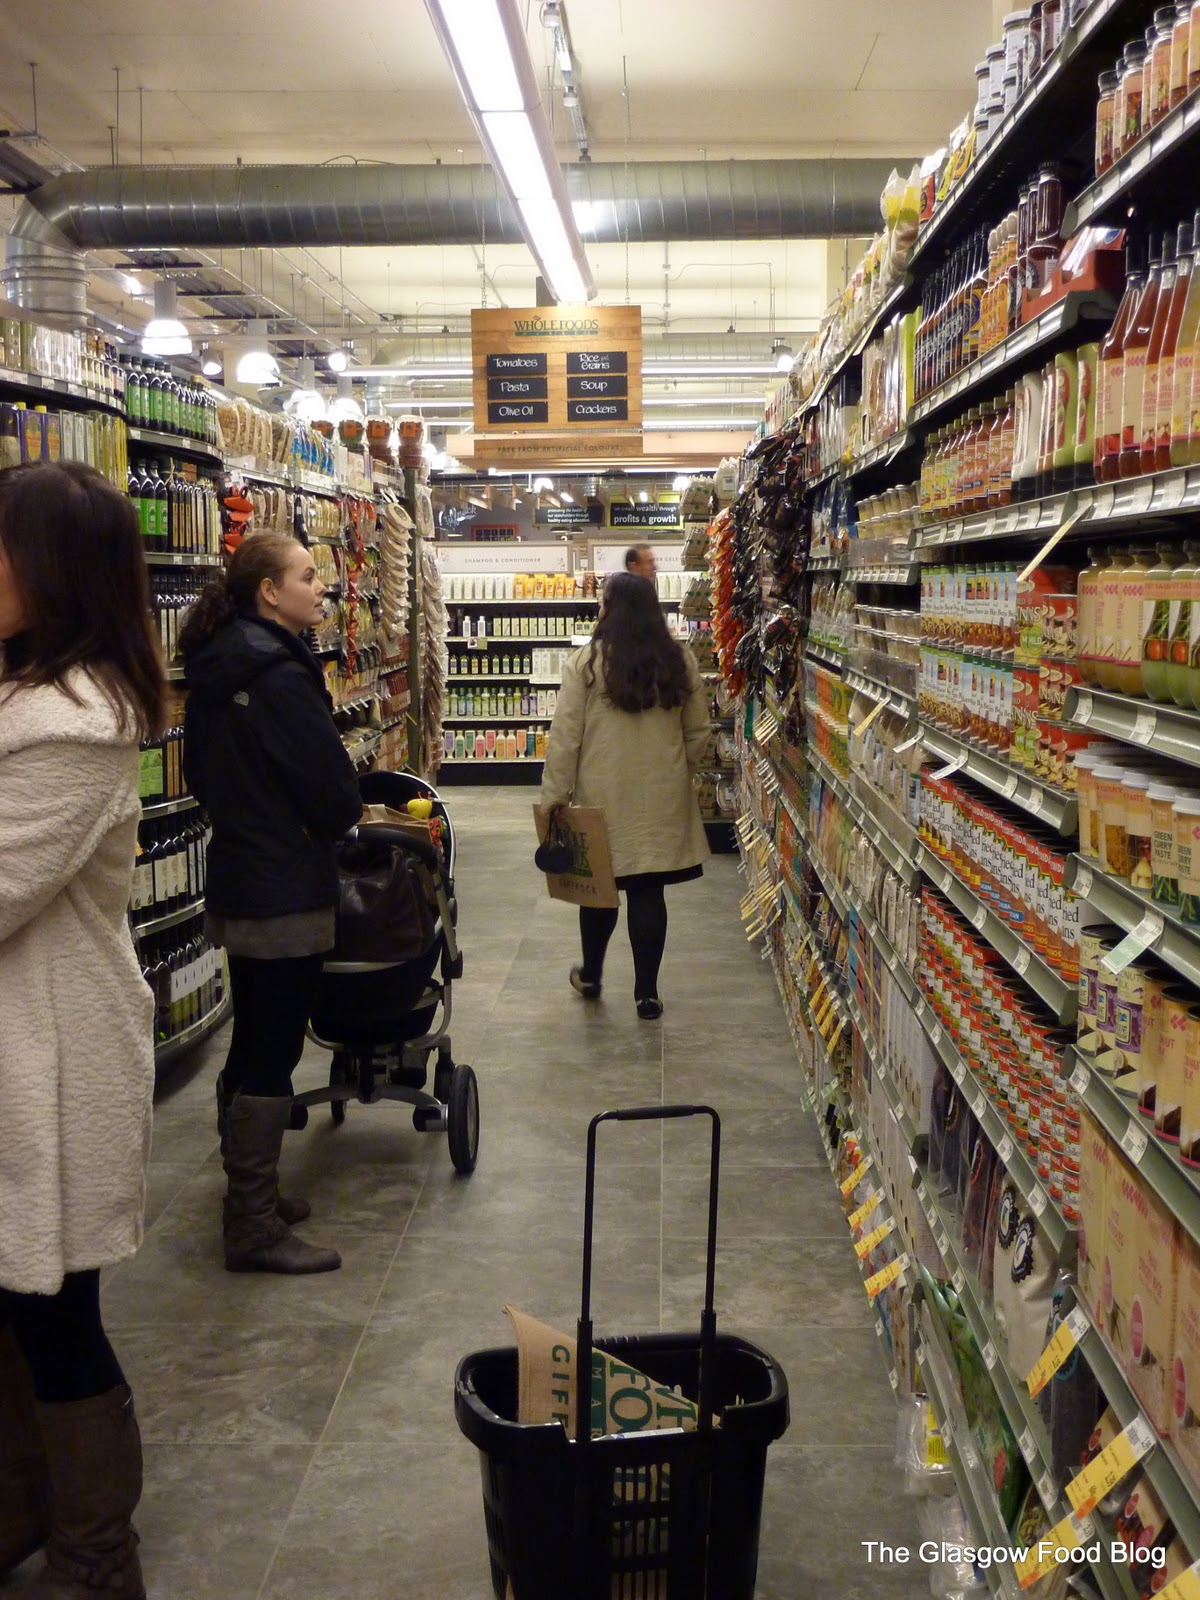 Yes, they have normal grocery aisles too